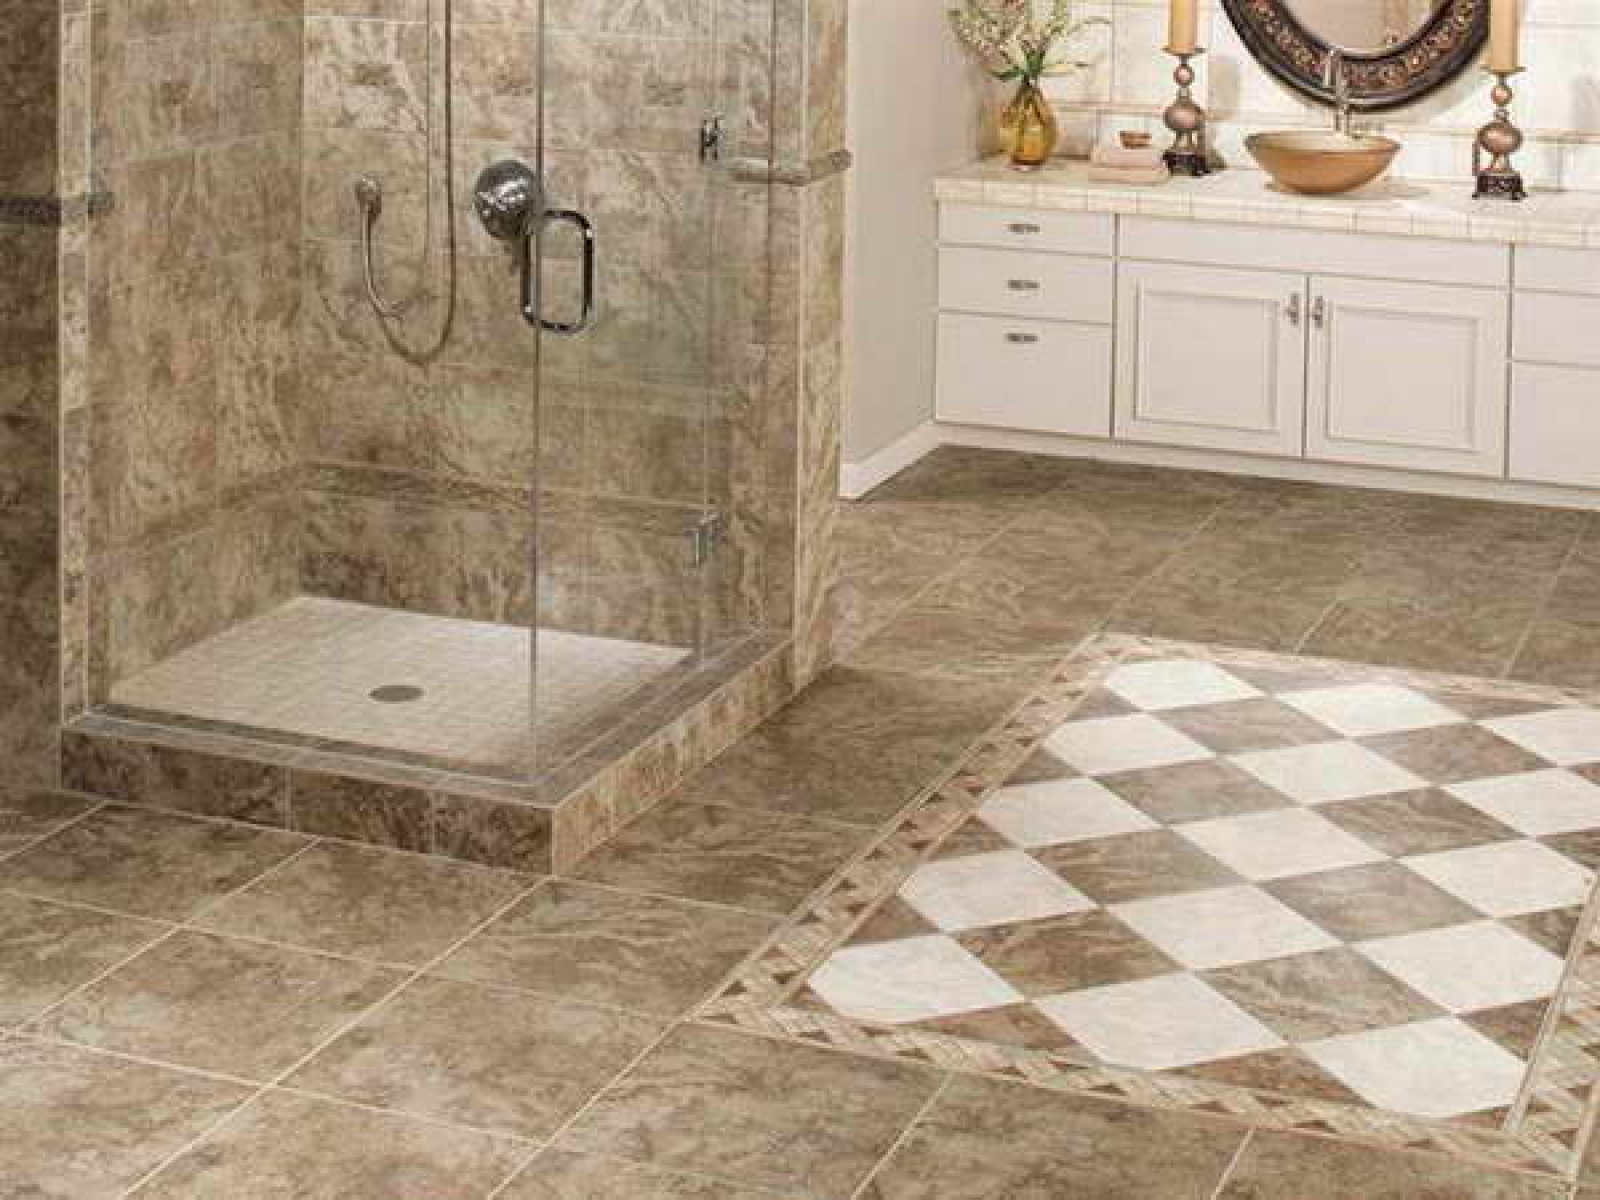 30 beautiful ideas and pictures decorative bathroom tile for Tile floors bathroom